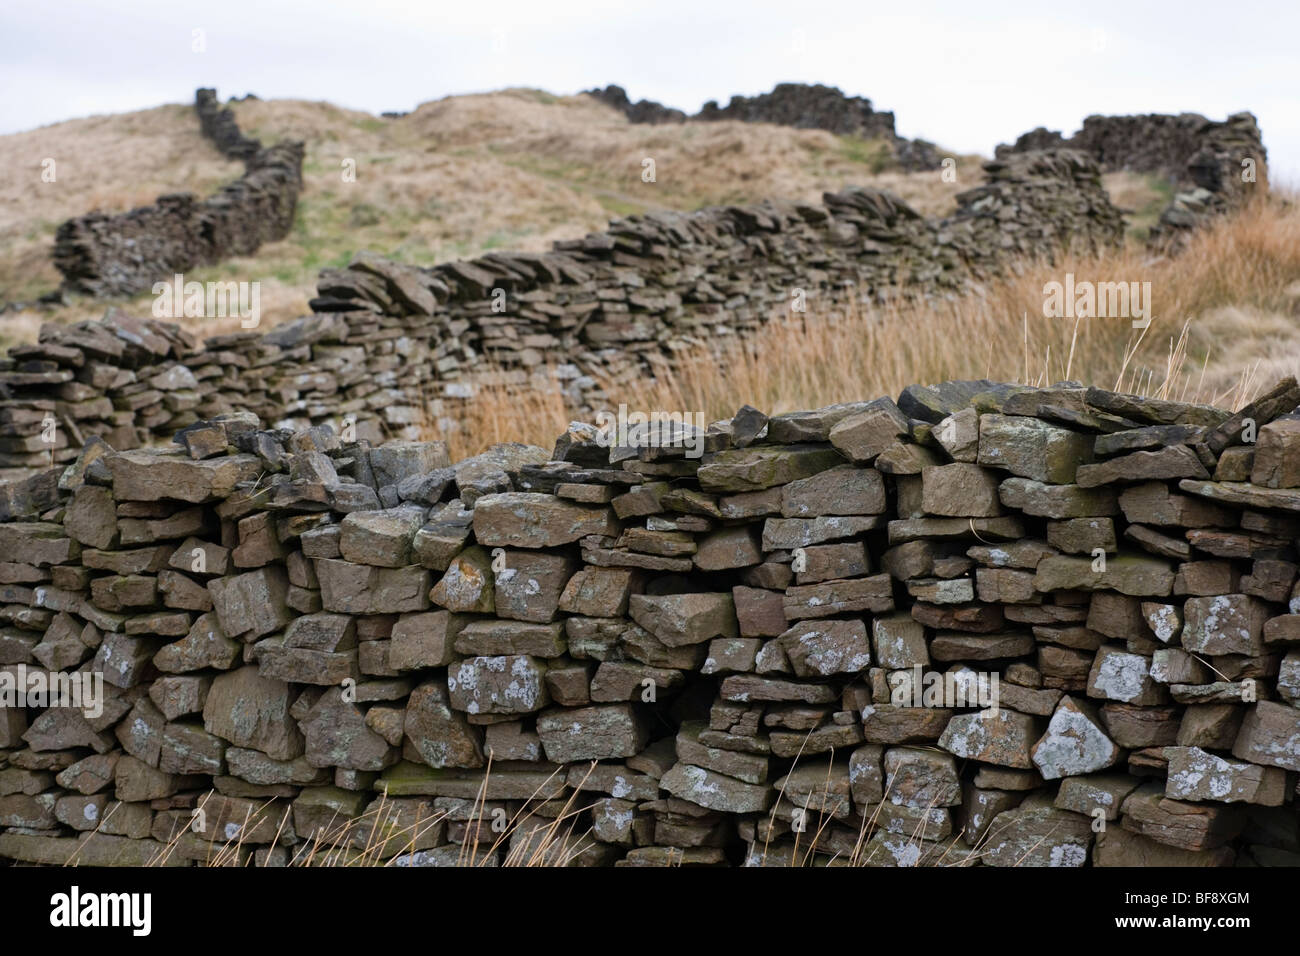 Dry Stonewalls On Wild Moor in the Goyt Valley near Buxton in Derbyshire - Stock Image